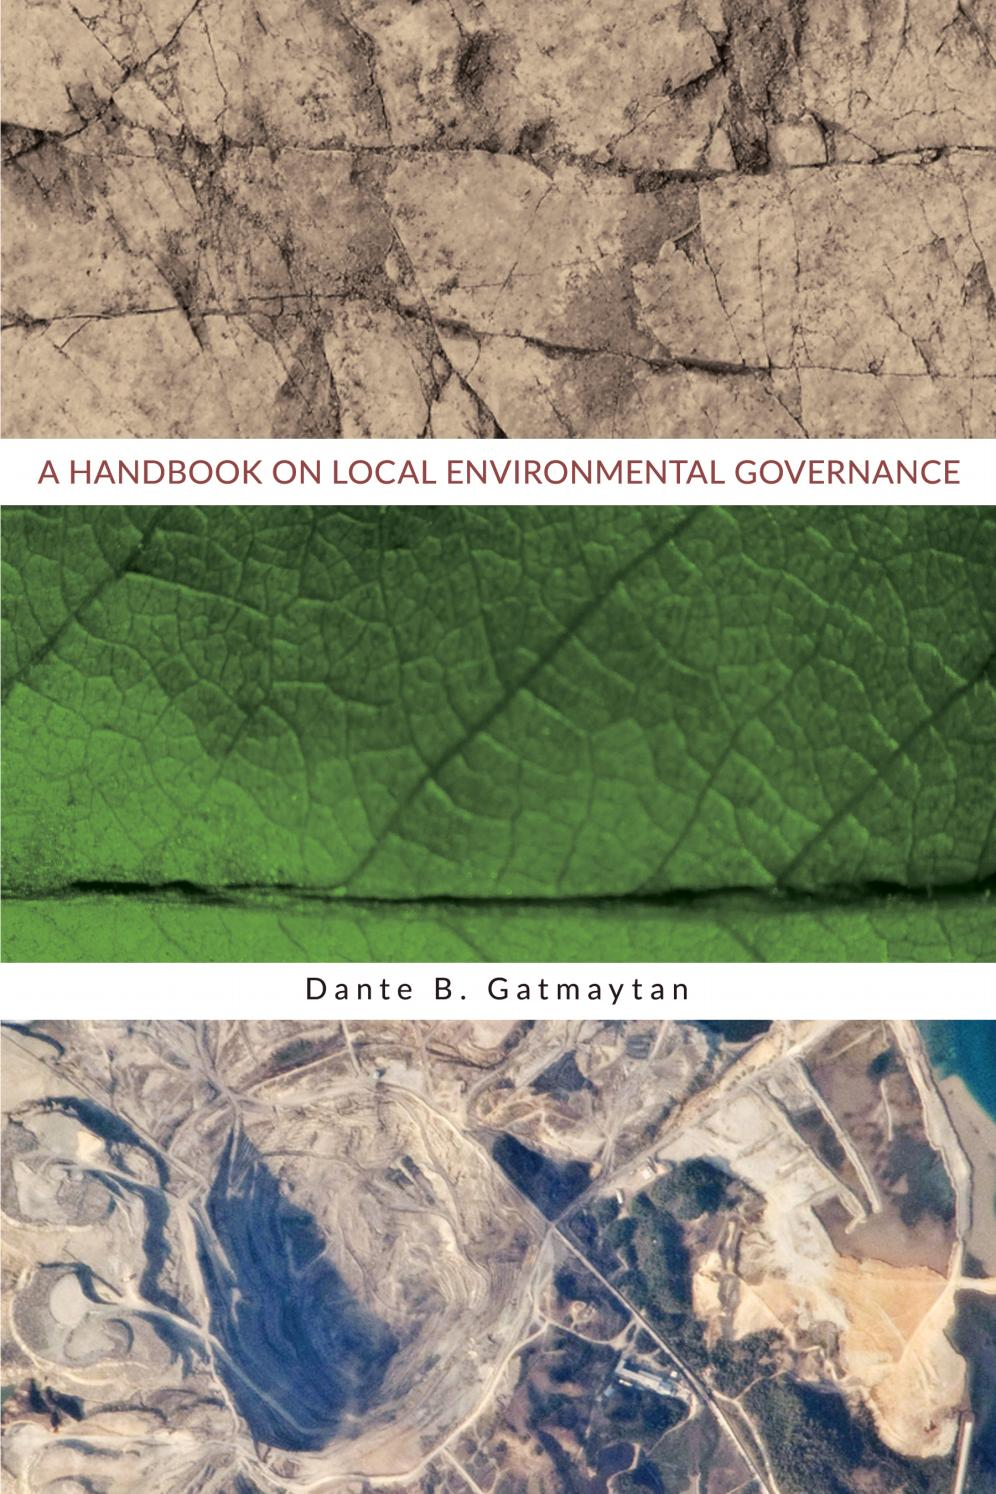 Comparative advantage in the scale of governance - people empowerment and government intervention in rural communities in the Cordillera, Philippines